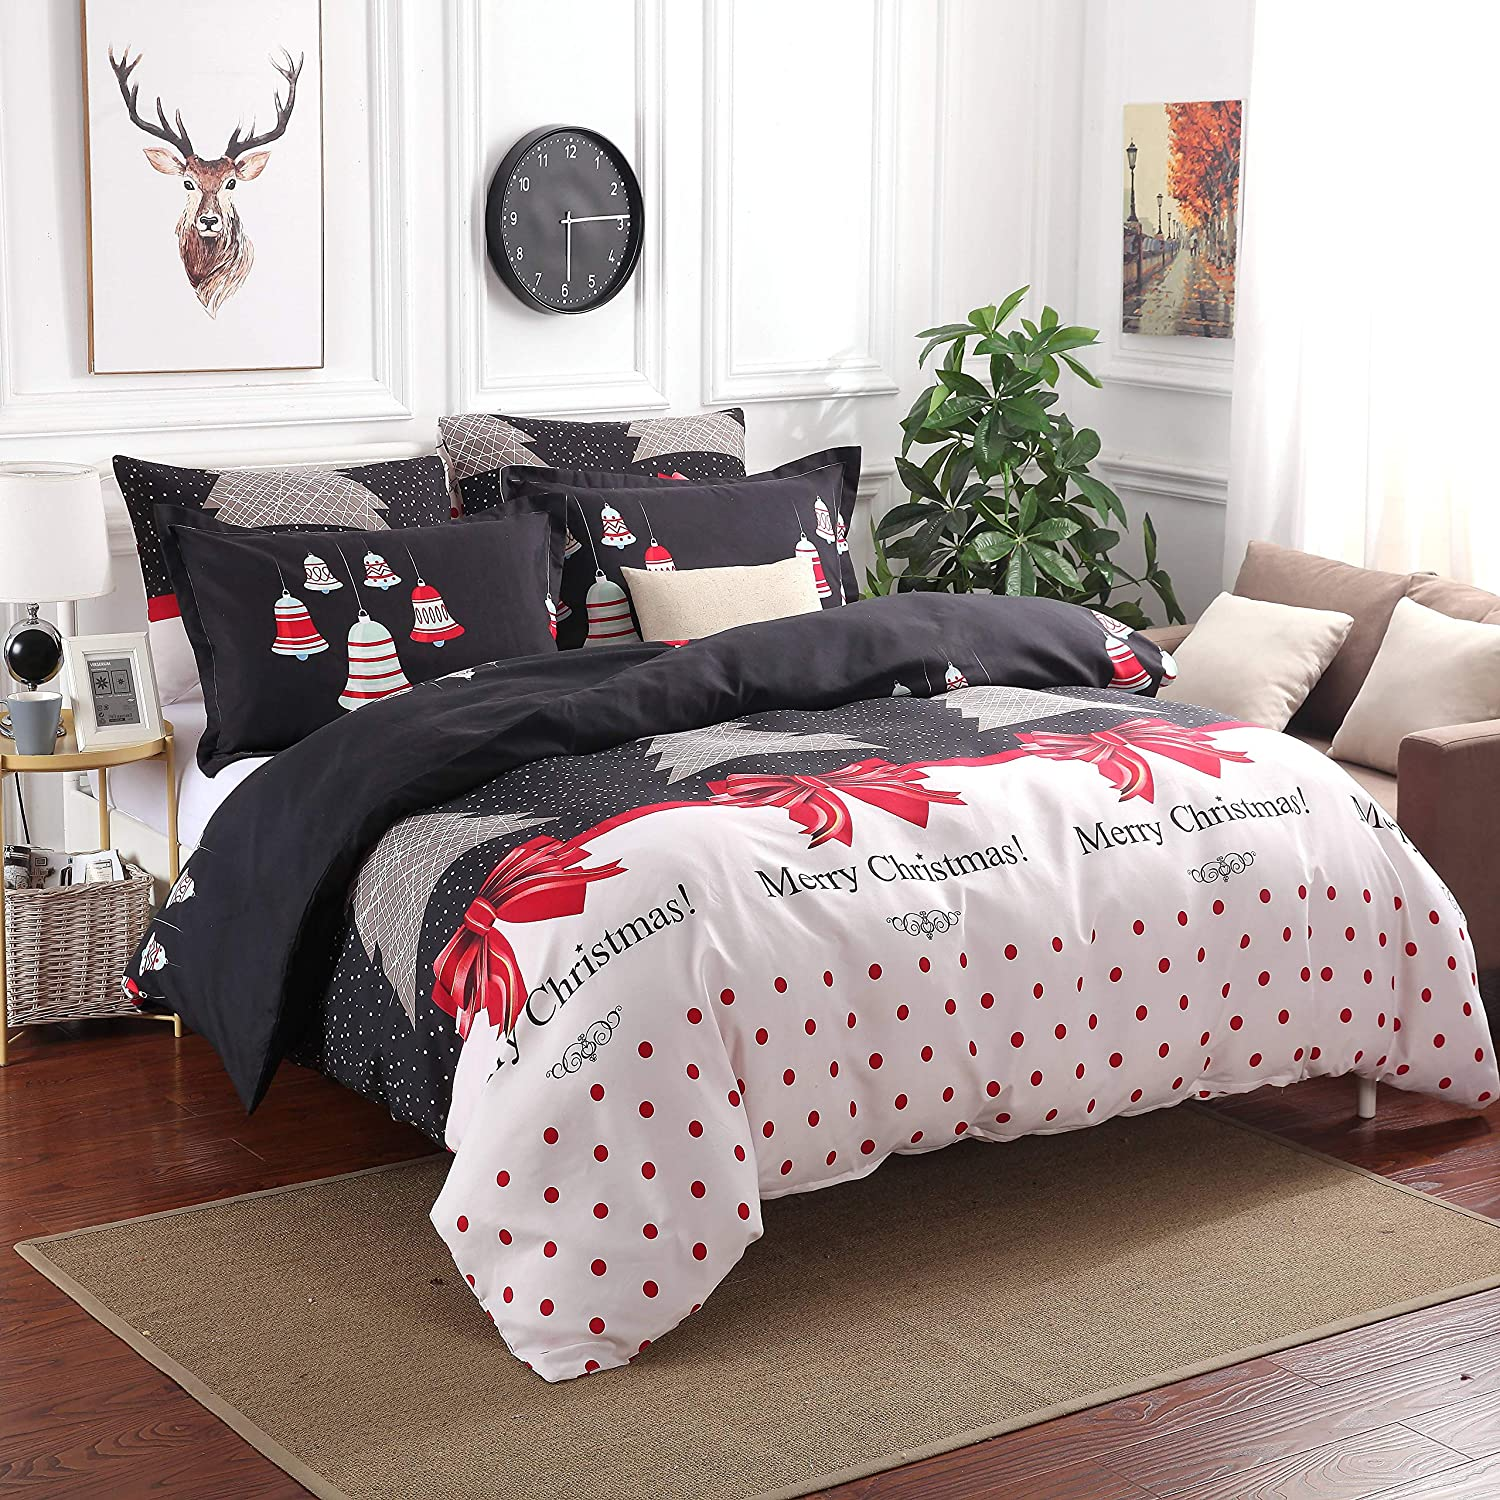 Duvet Cover and Pillow Shams (California King)